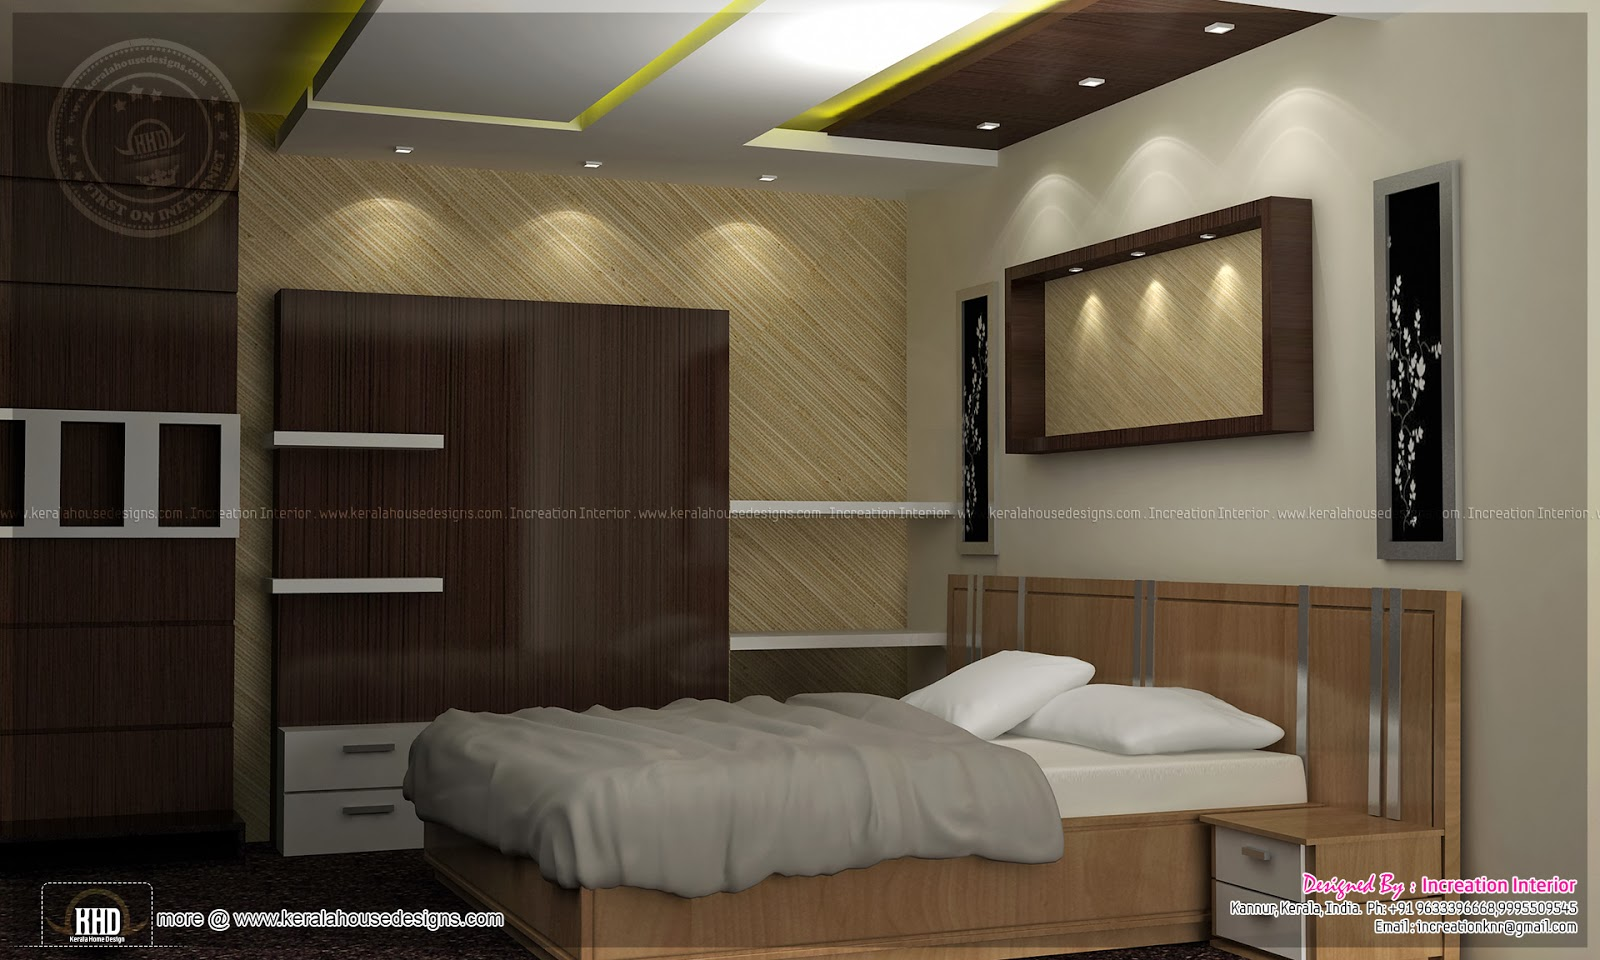 Bedroom interior designs indian house plans for Bedroom designs interior